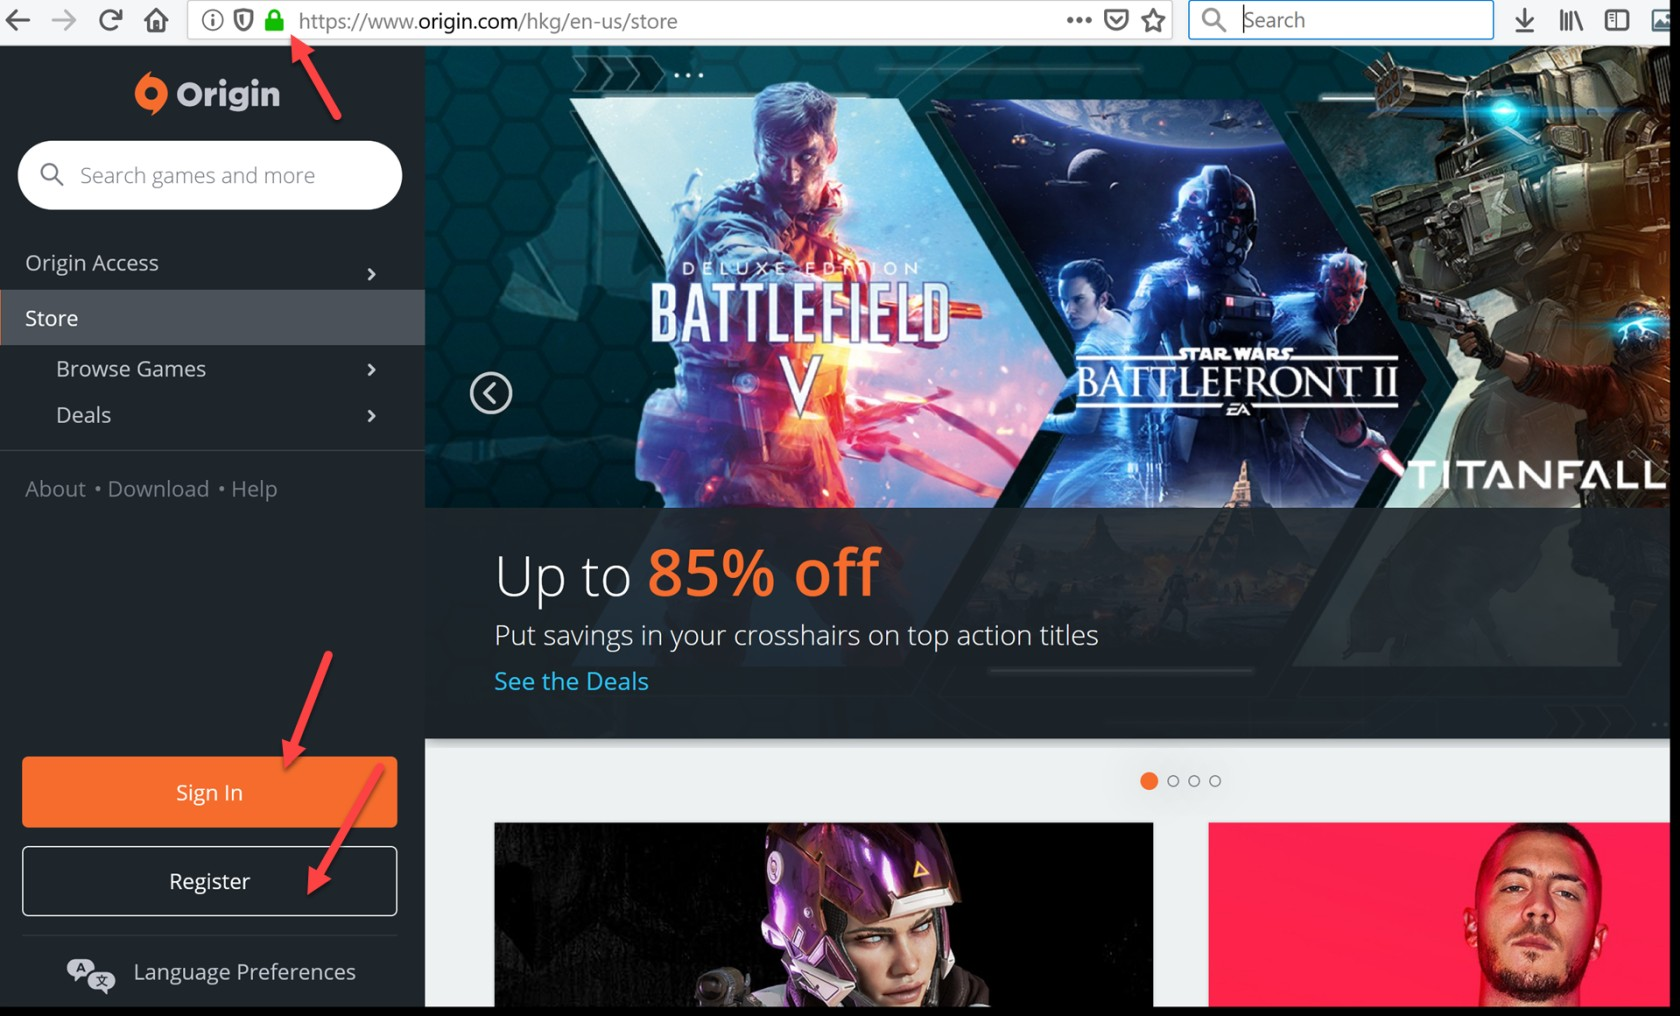 Origin website